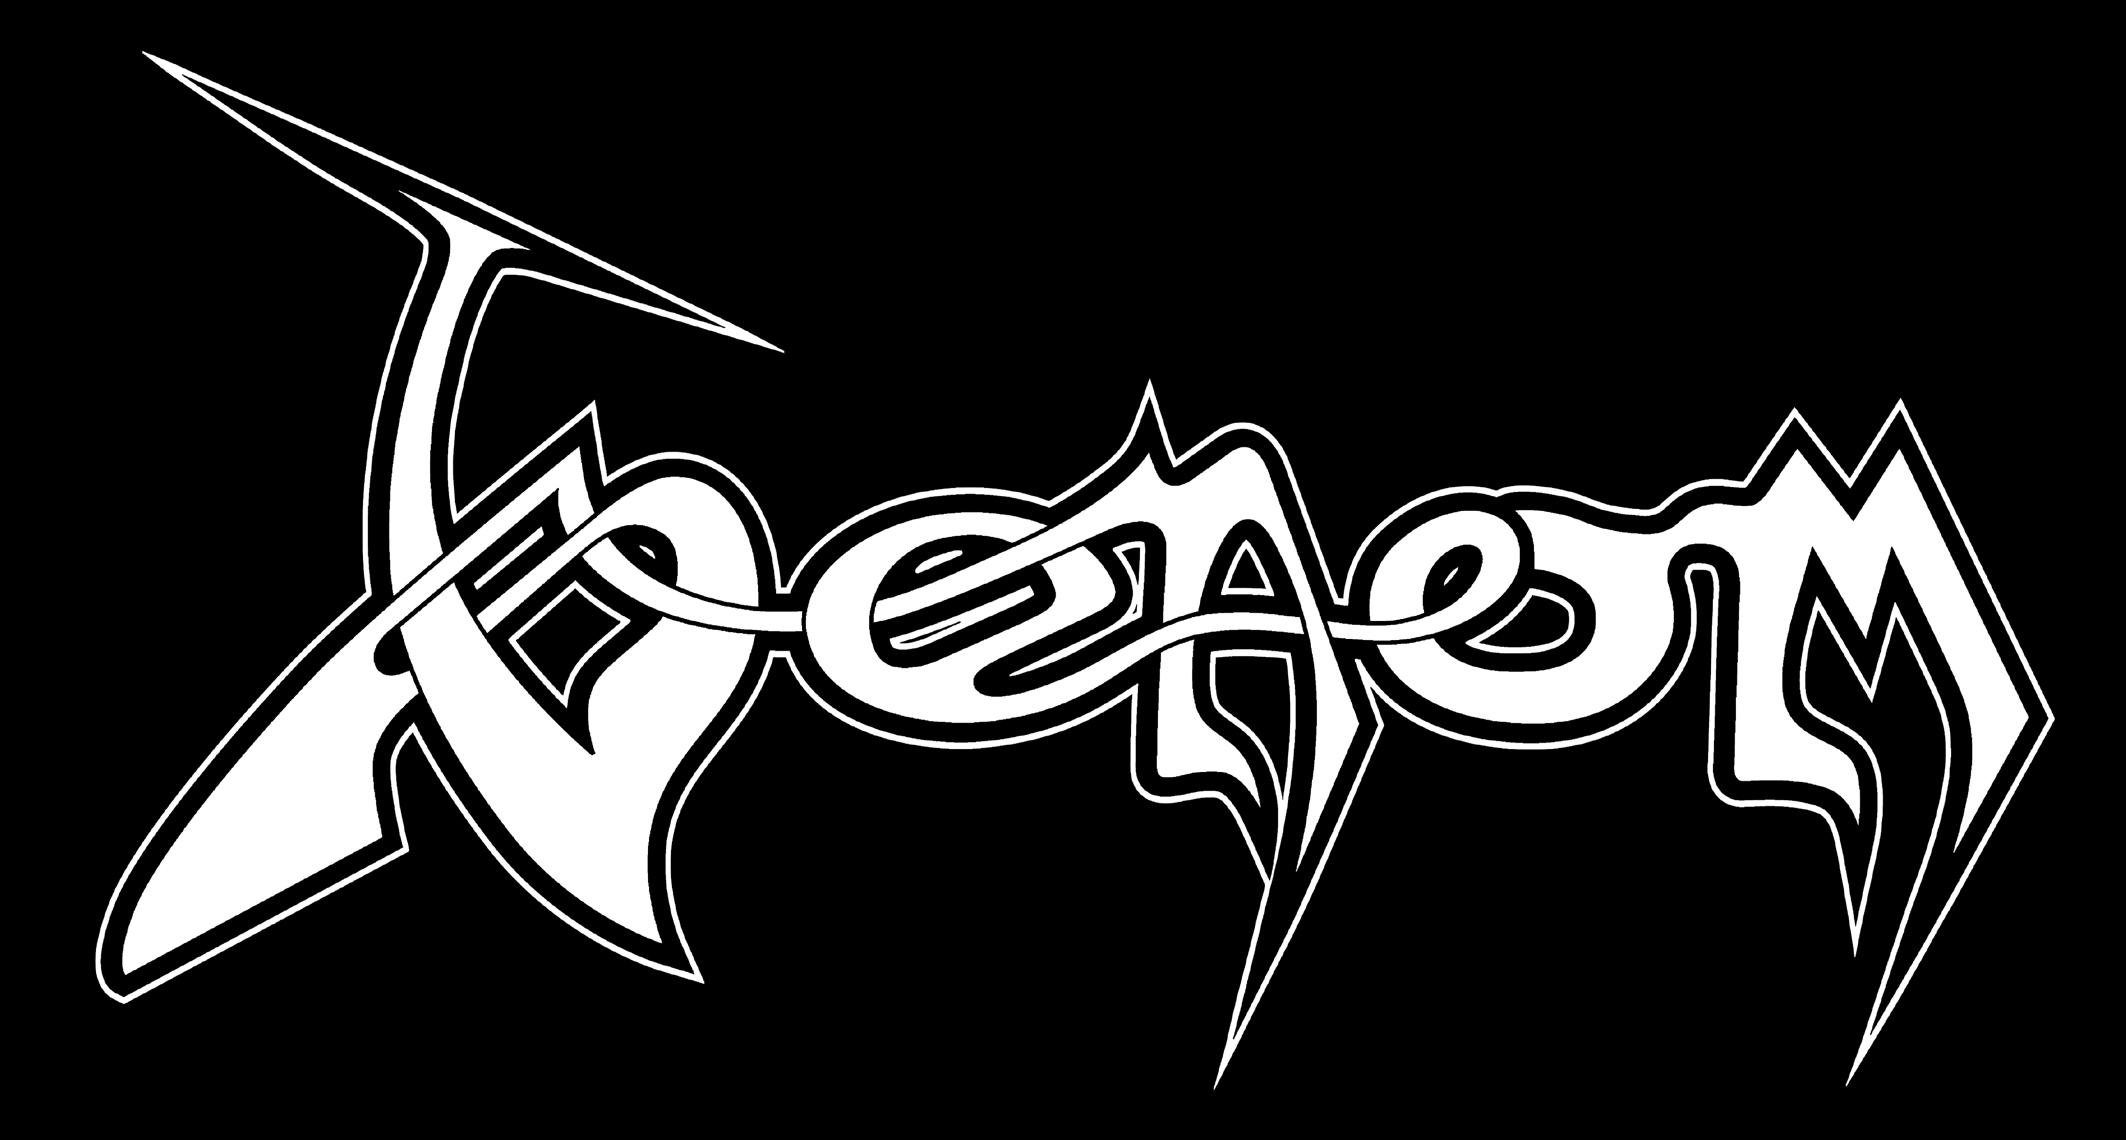 Standard Venom Logos - white on black background  amp  black on white    Venom Logo Wallpaper